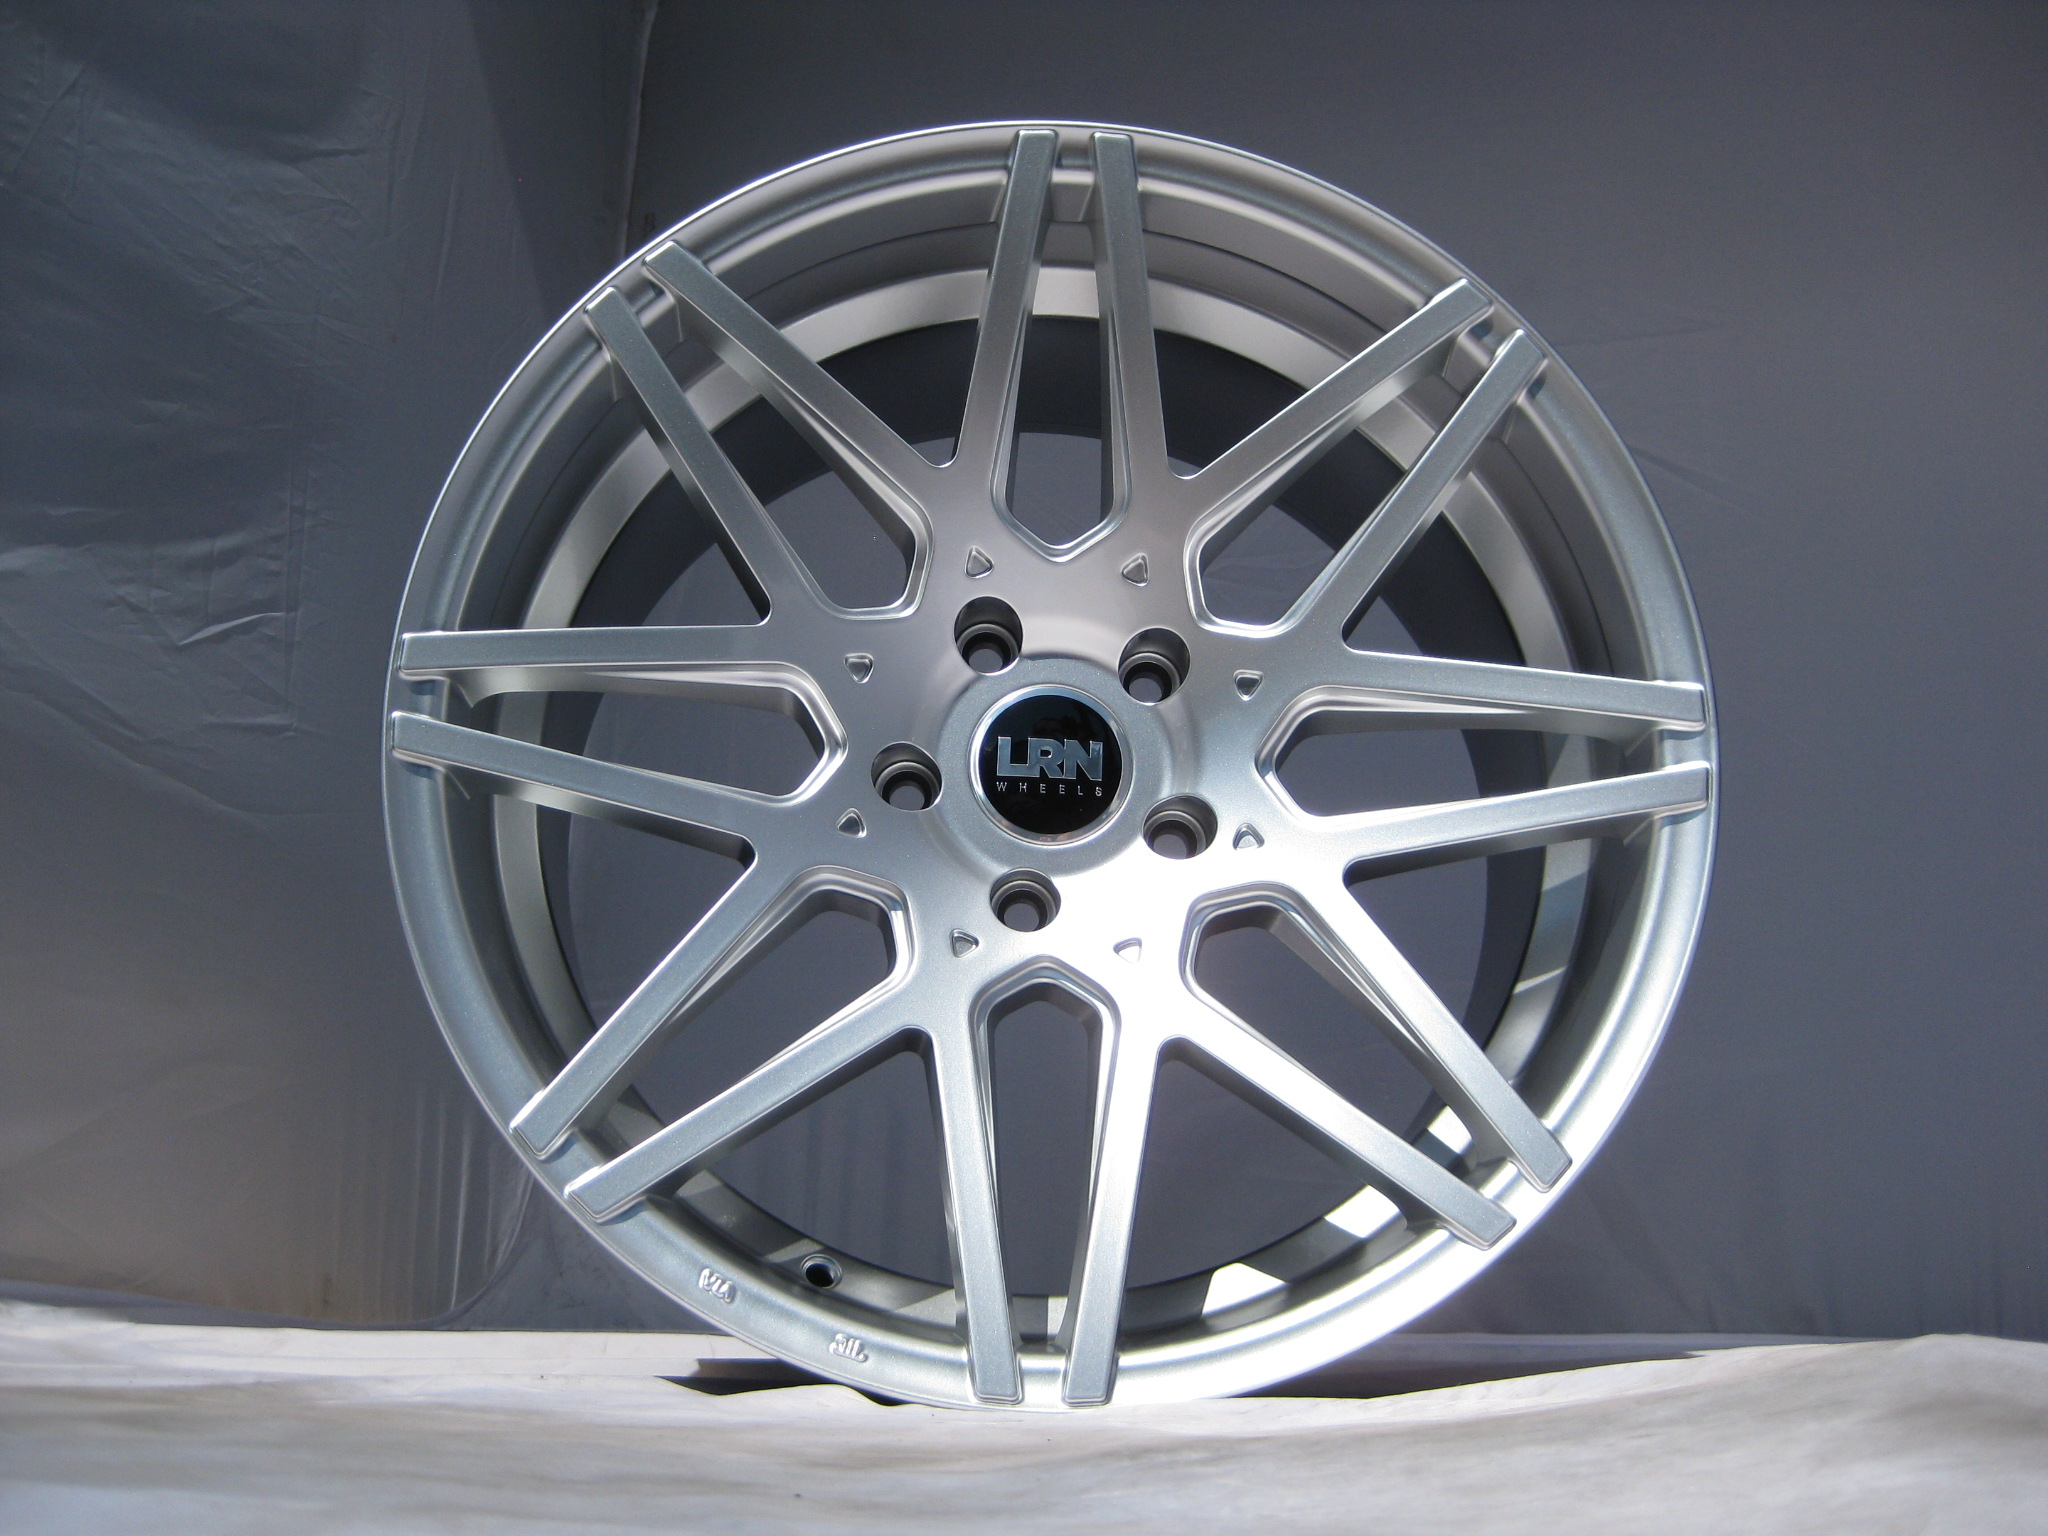 "NEW 19"" LRN BLADE ALLOYS IN HYPER SILVER, MASSIVE 10.5"" WIDE REARS WITH DEEPER CONCAVE"